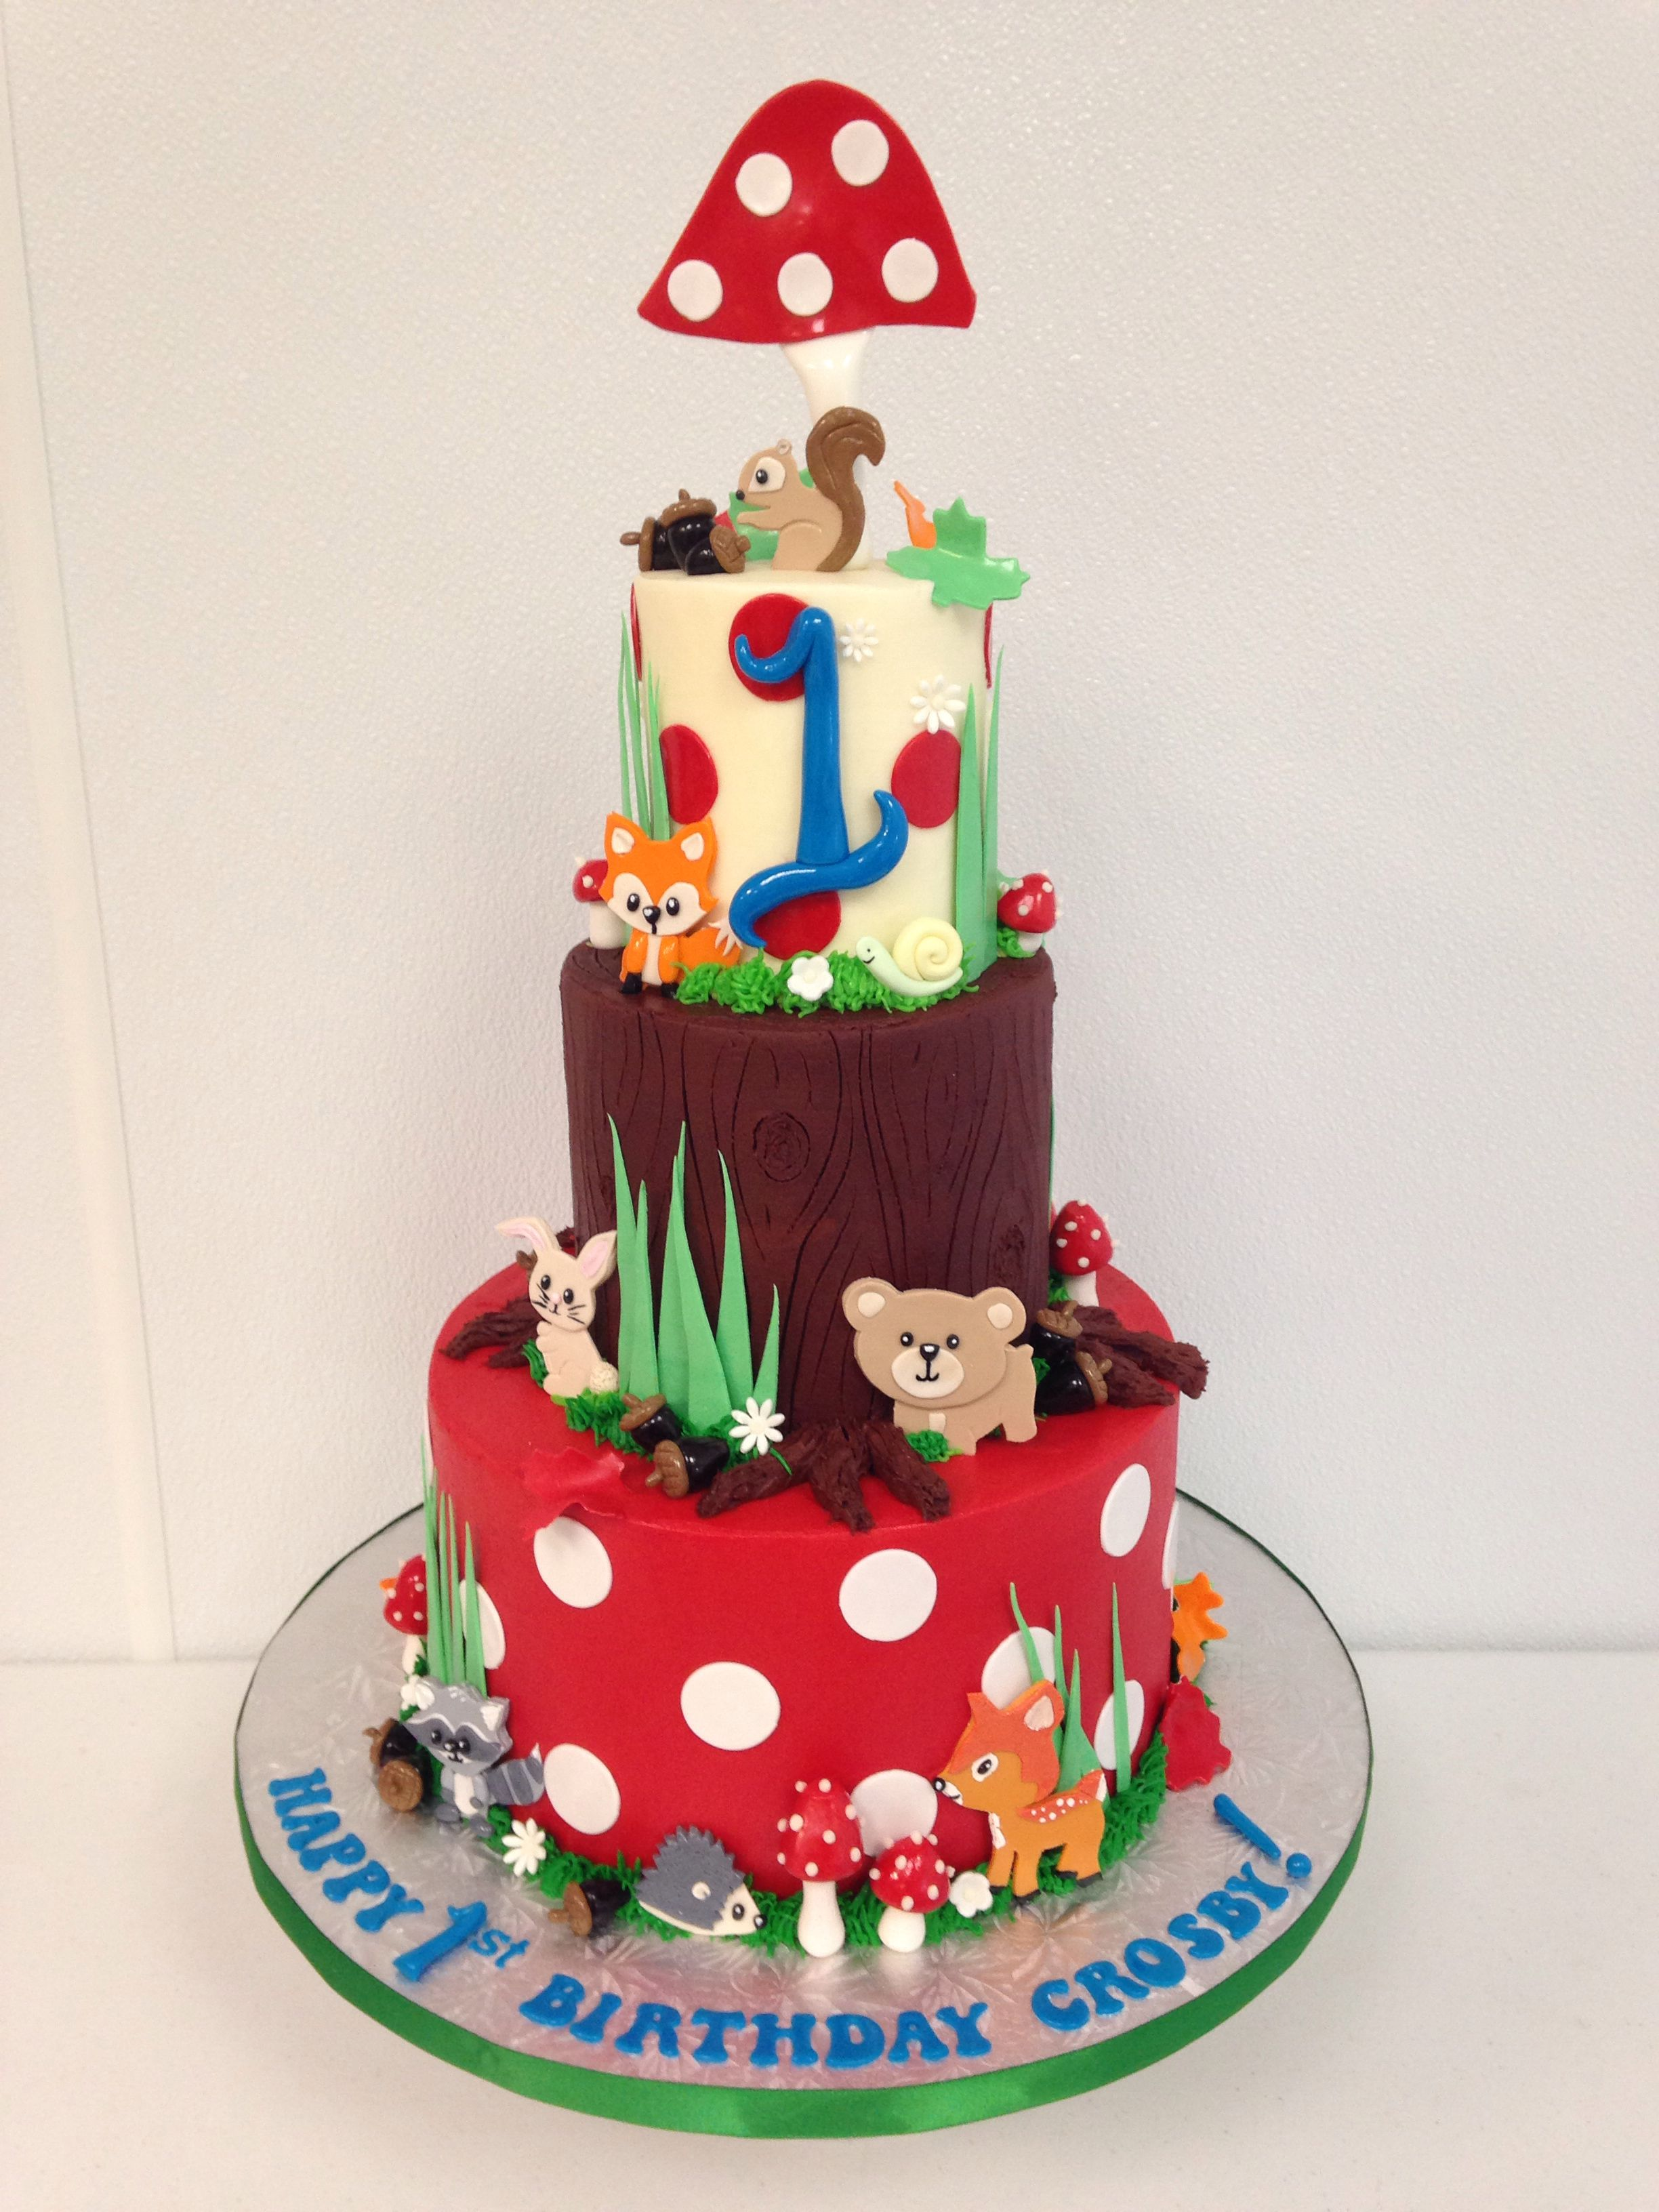 Woodland animal cake | Farm cake, Cake, Animal cake